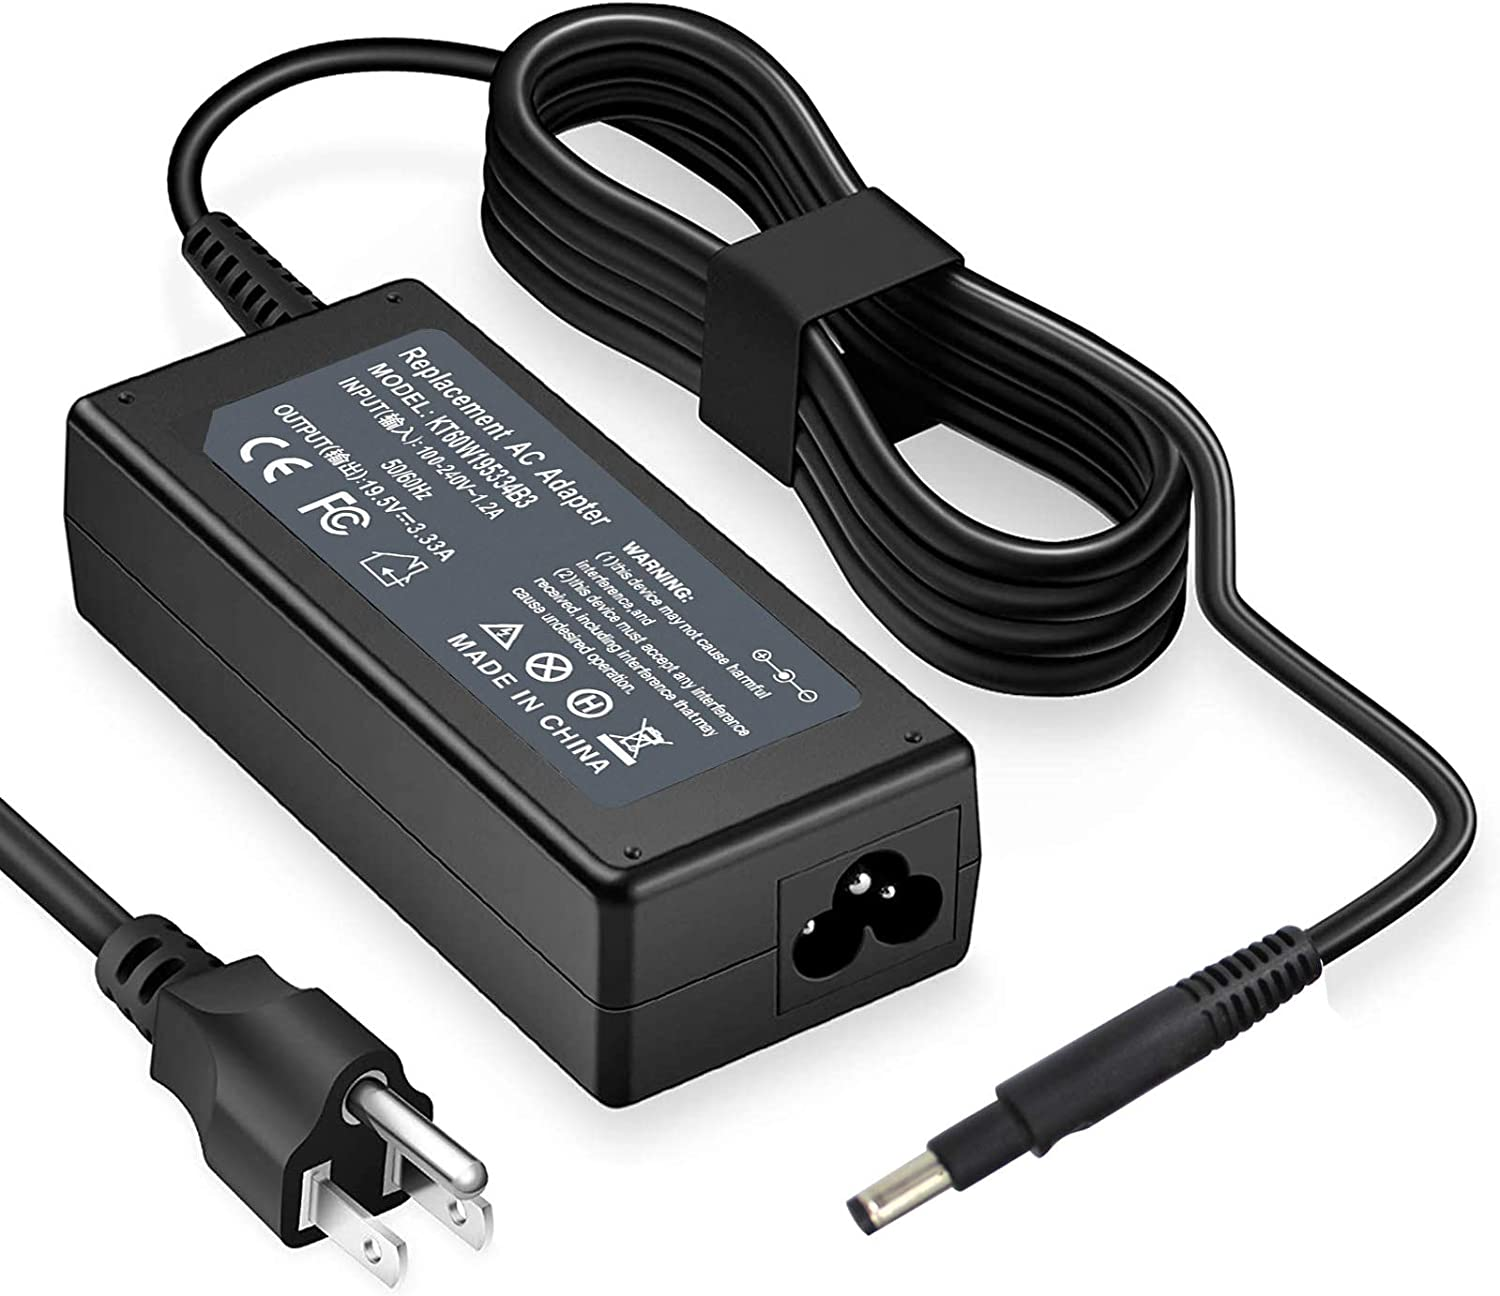 65W Ac Adapter Charger Comapatible with HP Pavilion Touchsmart 14-b000 15-b000 15-B129WM 15-B143CL 15-b153CL 15-B119WM 14-B109WM 14-B120DX 14-B124US 677770-001 67770-002 PPP009D Envy 4 6